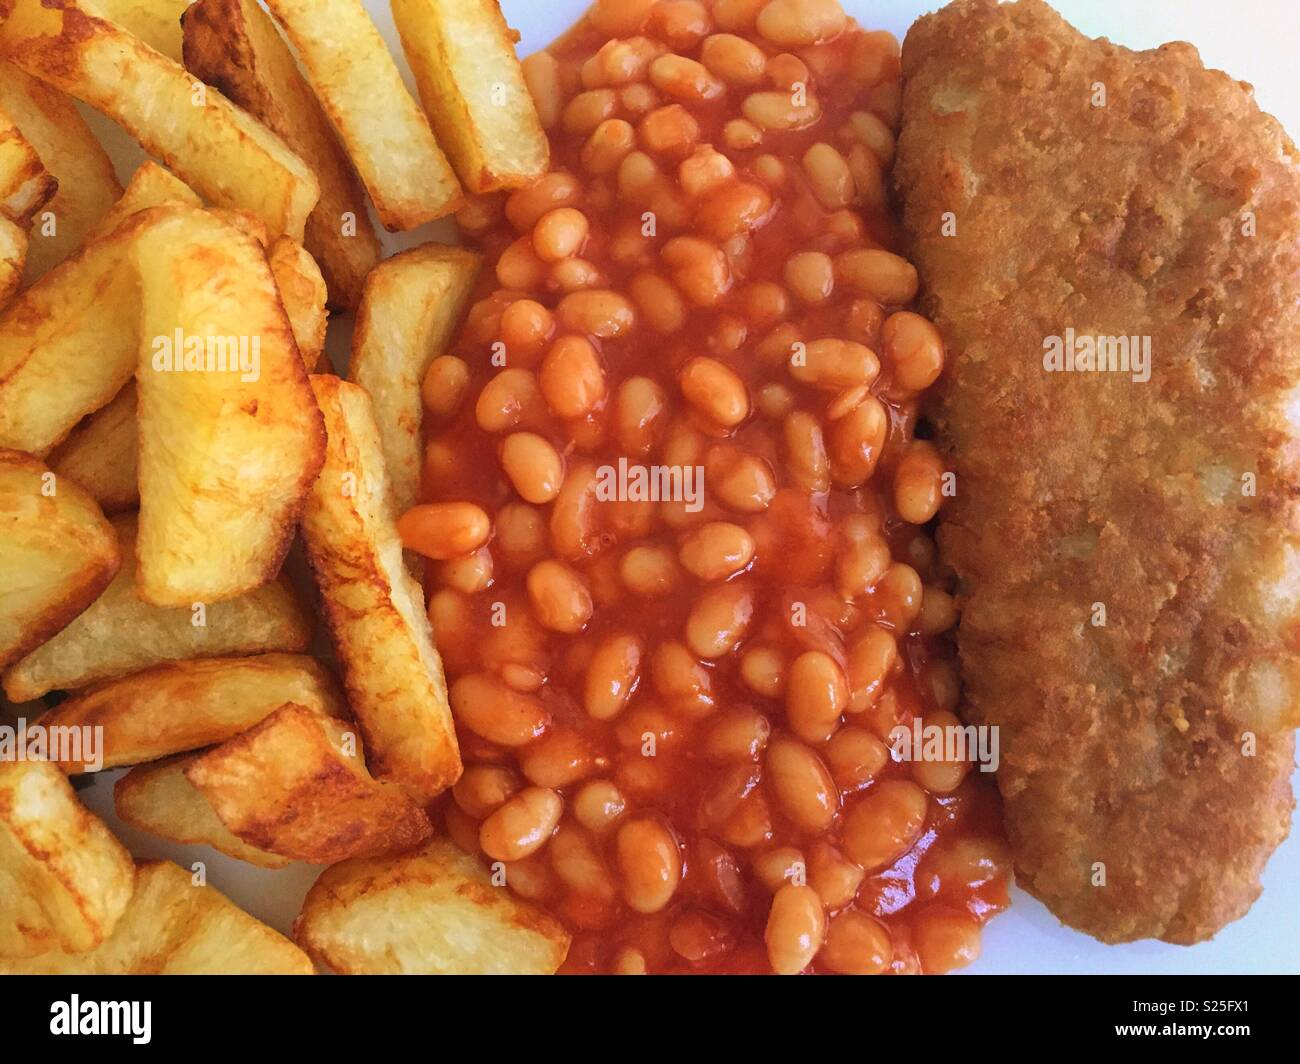 Chips, beans and fish. - Stock Image